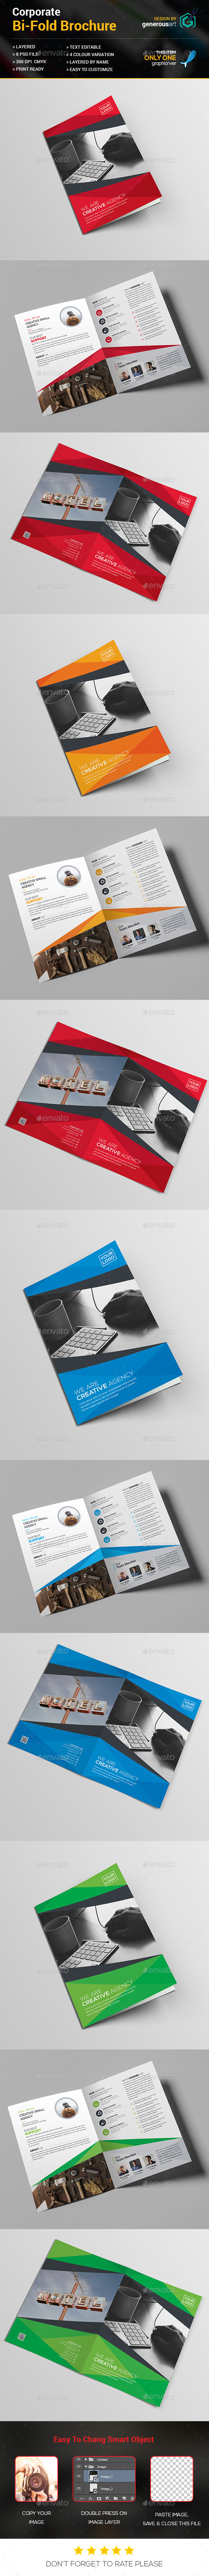 Bi-Fold Business_Template - Corporate Brochures